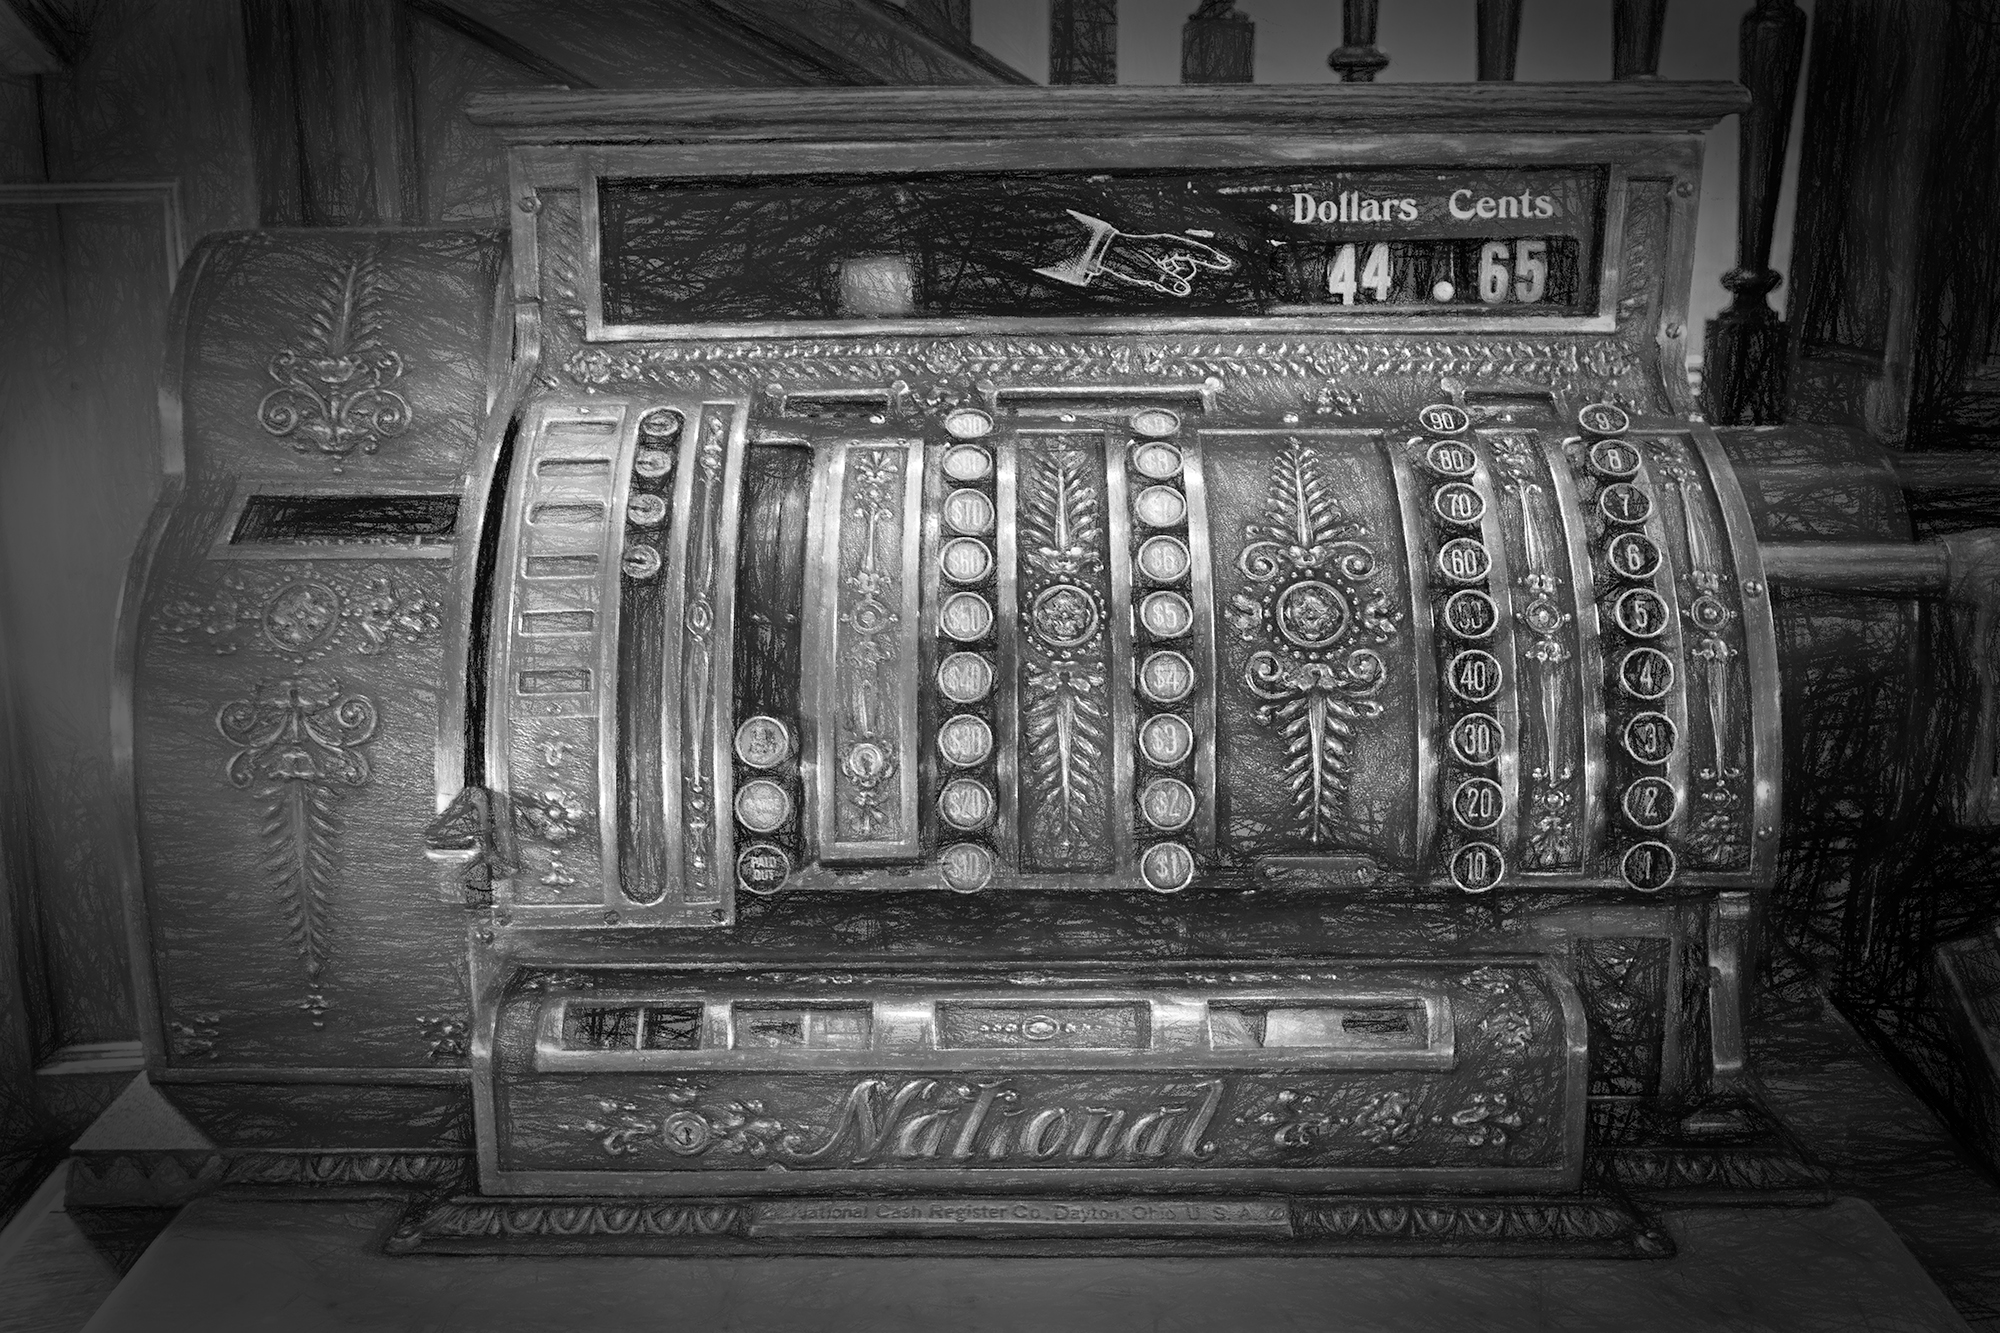 Cash Register. Hotel Boulderado, Boulder, Colorado, 2016